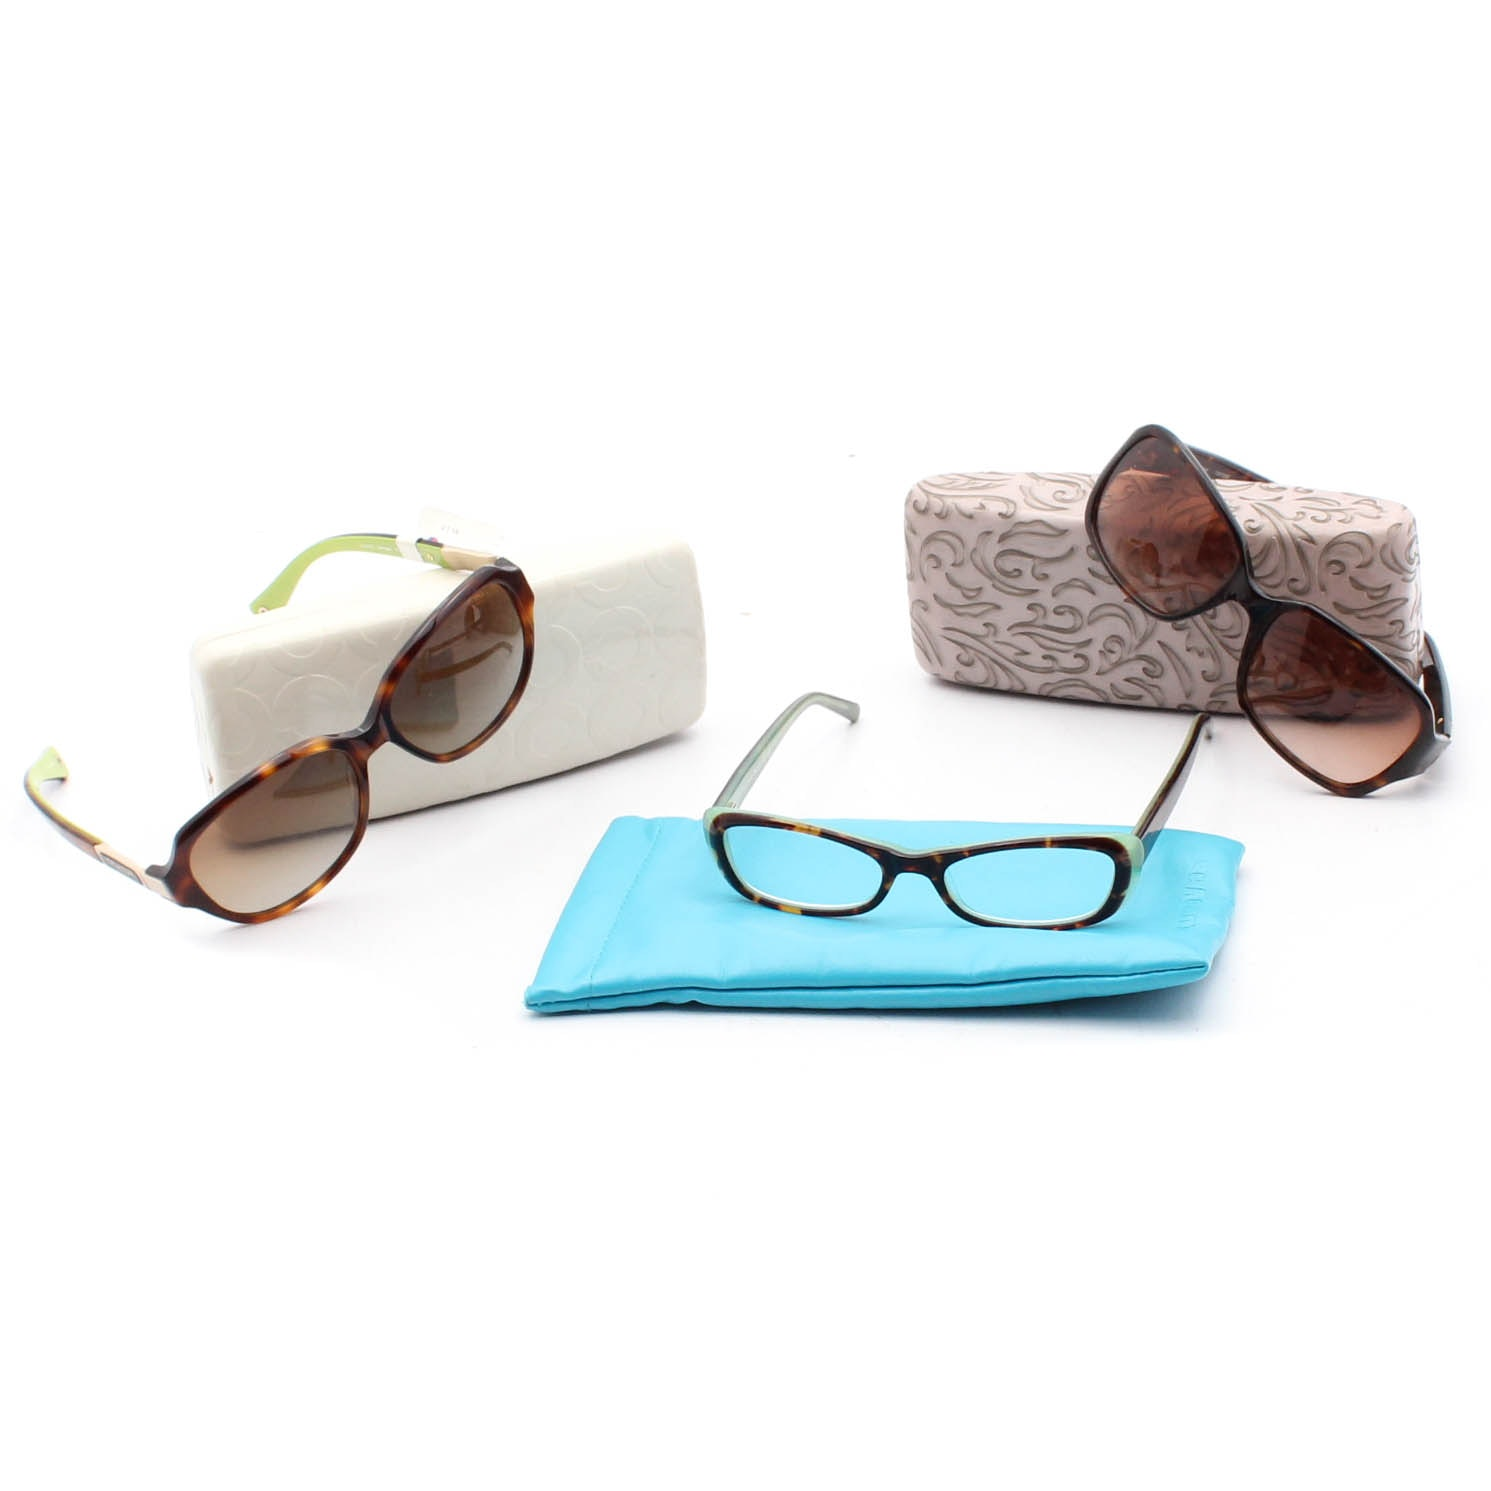 Two Pairs of Coach Sunglasses and Kate Spade New York Eyeglasses